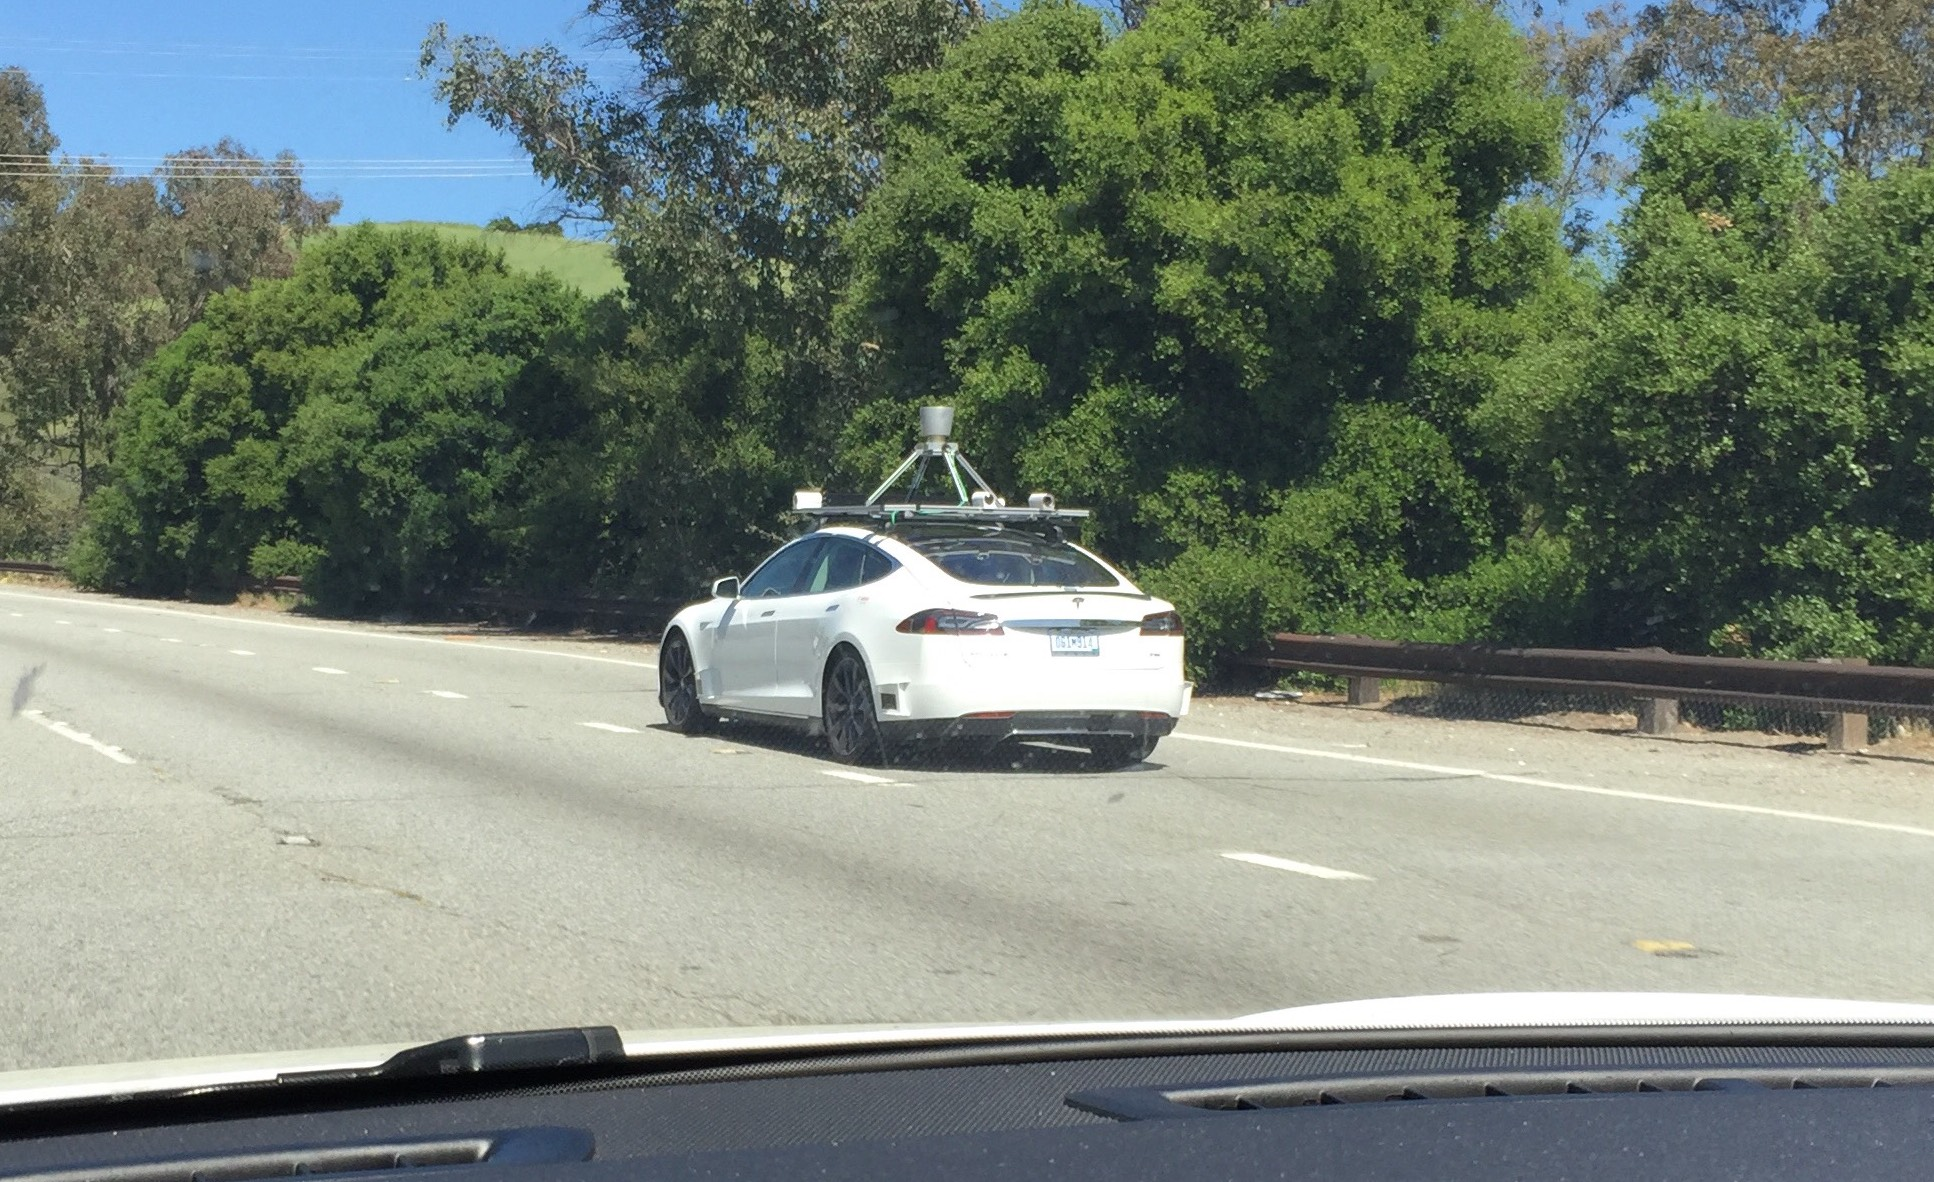 Tesla with LiDAR and mfg plate spotted testing in Palo Alto